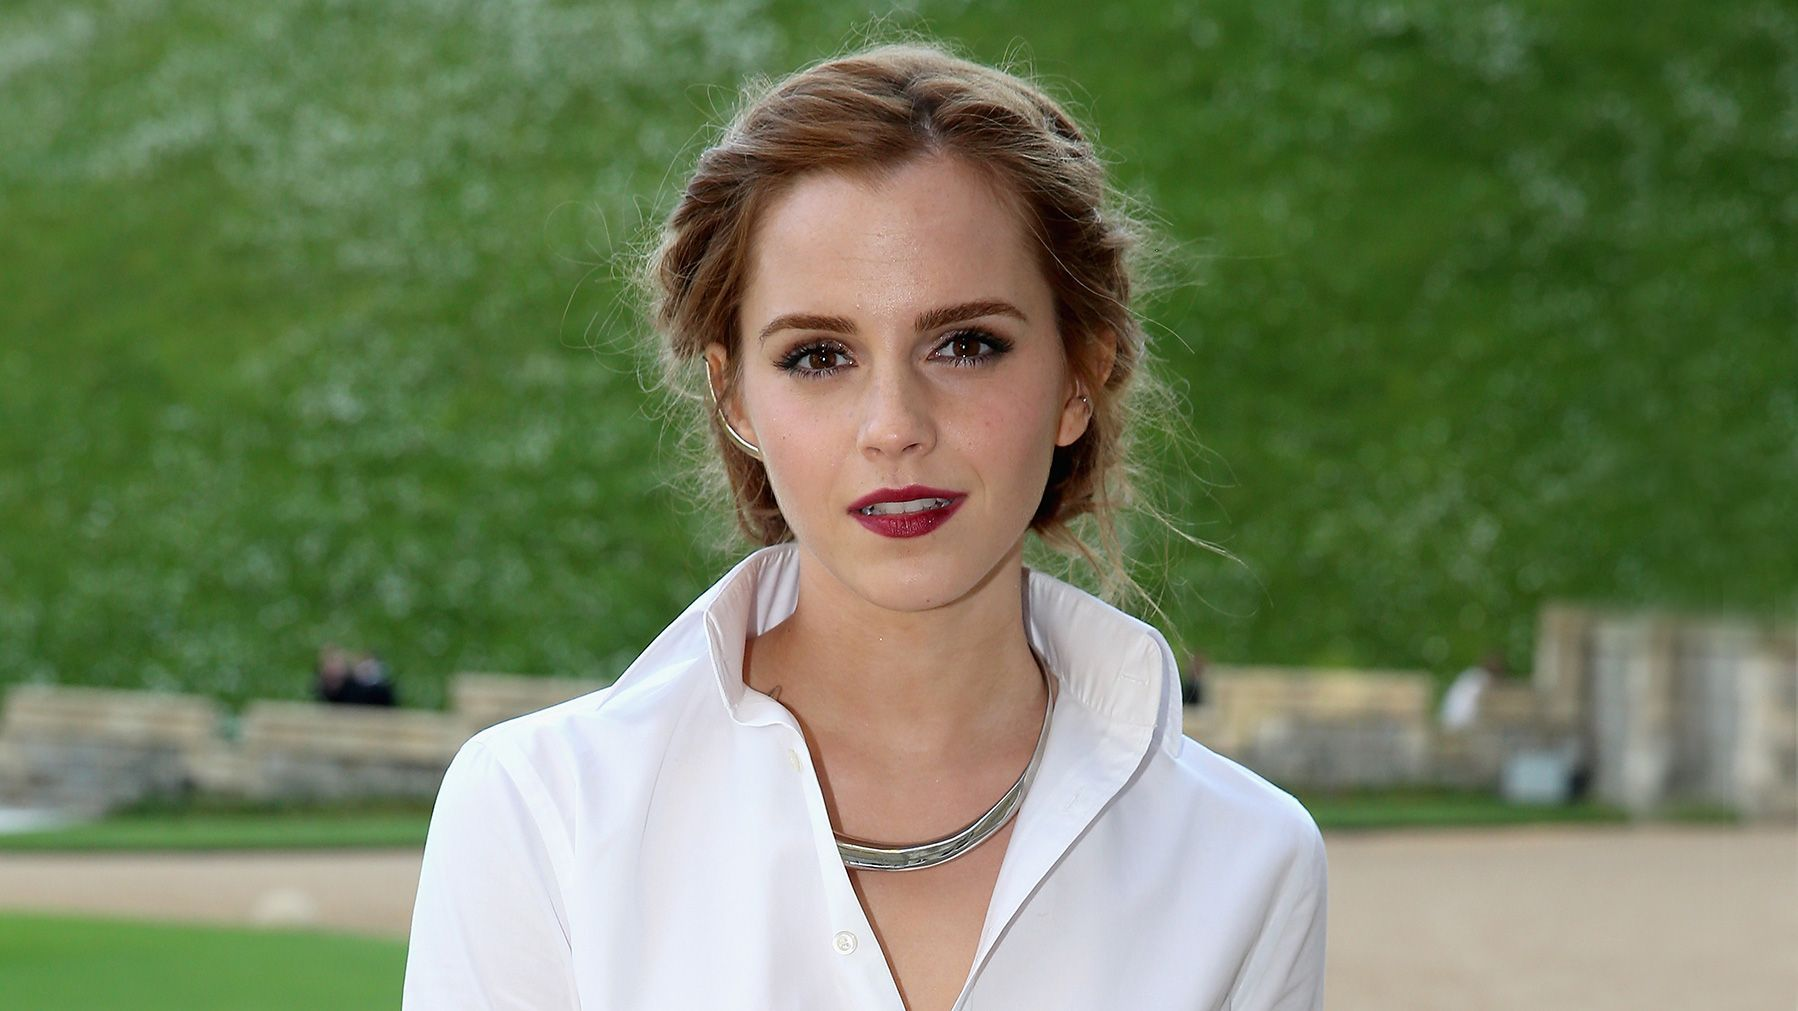 Emma Watson Just Revealed A Magical Hair Transformation See